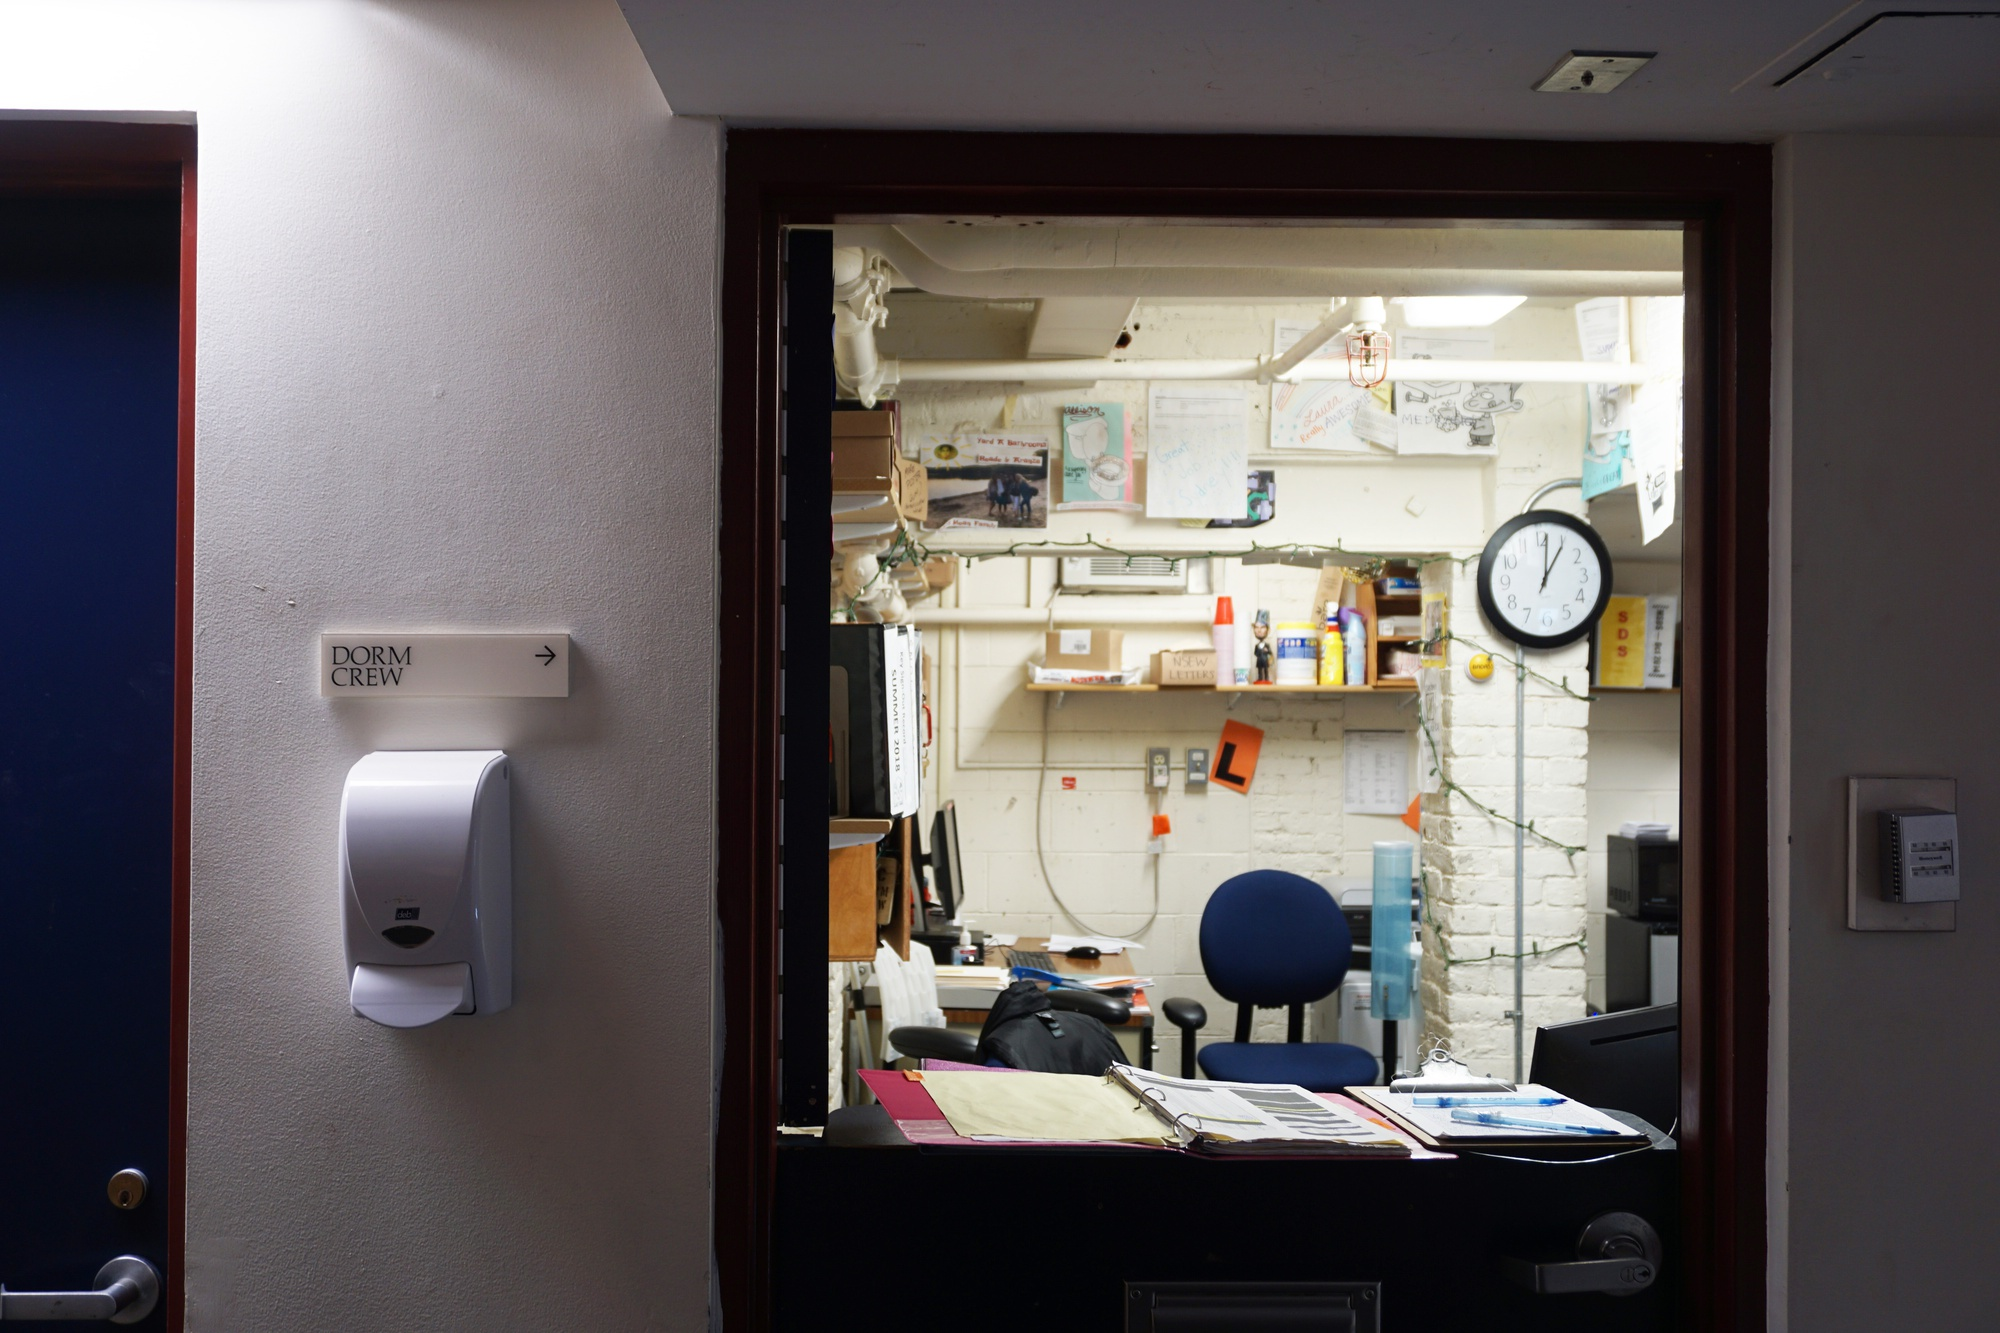 The Dorm Crew office is located in the basement of Weld Hall.